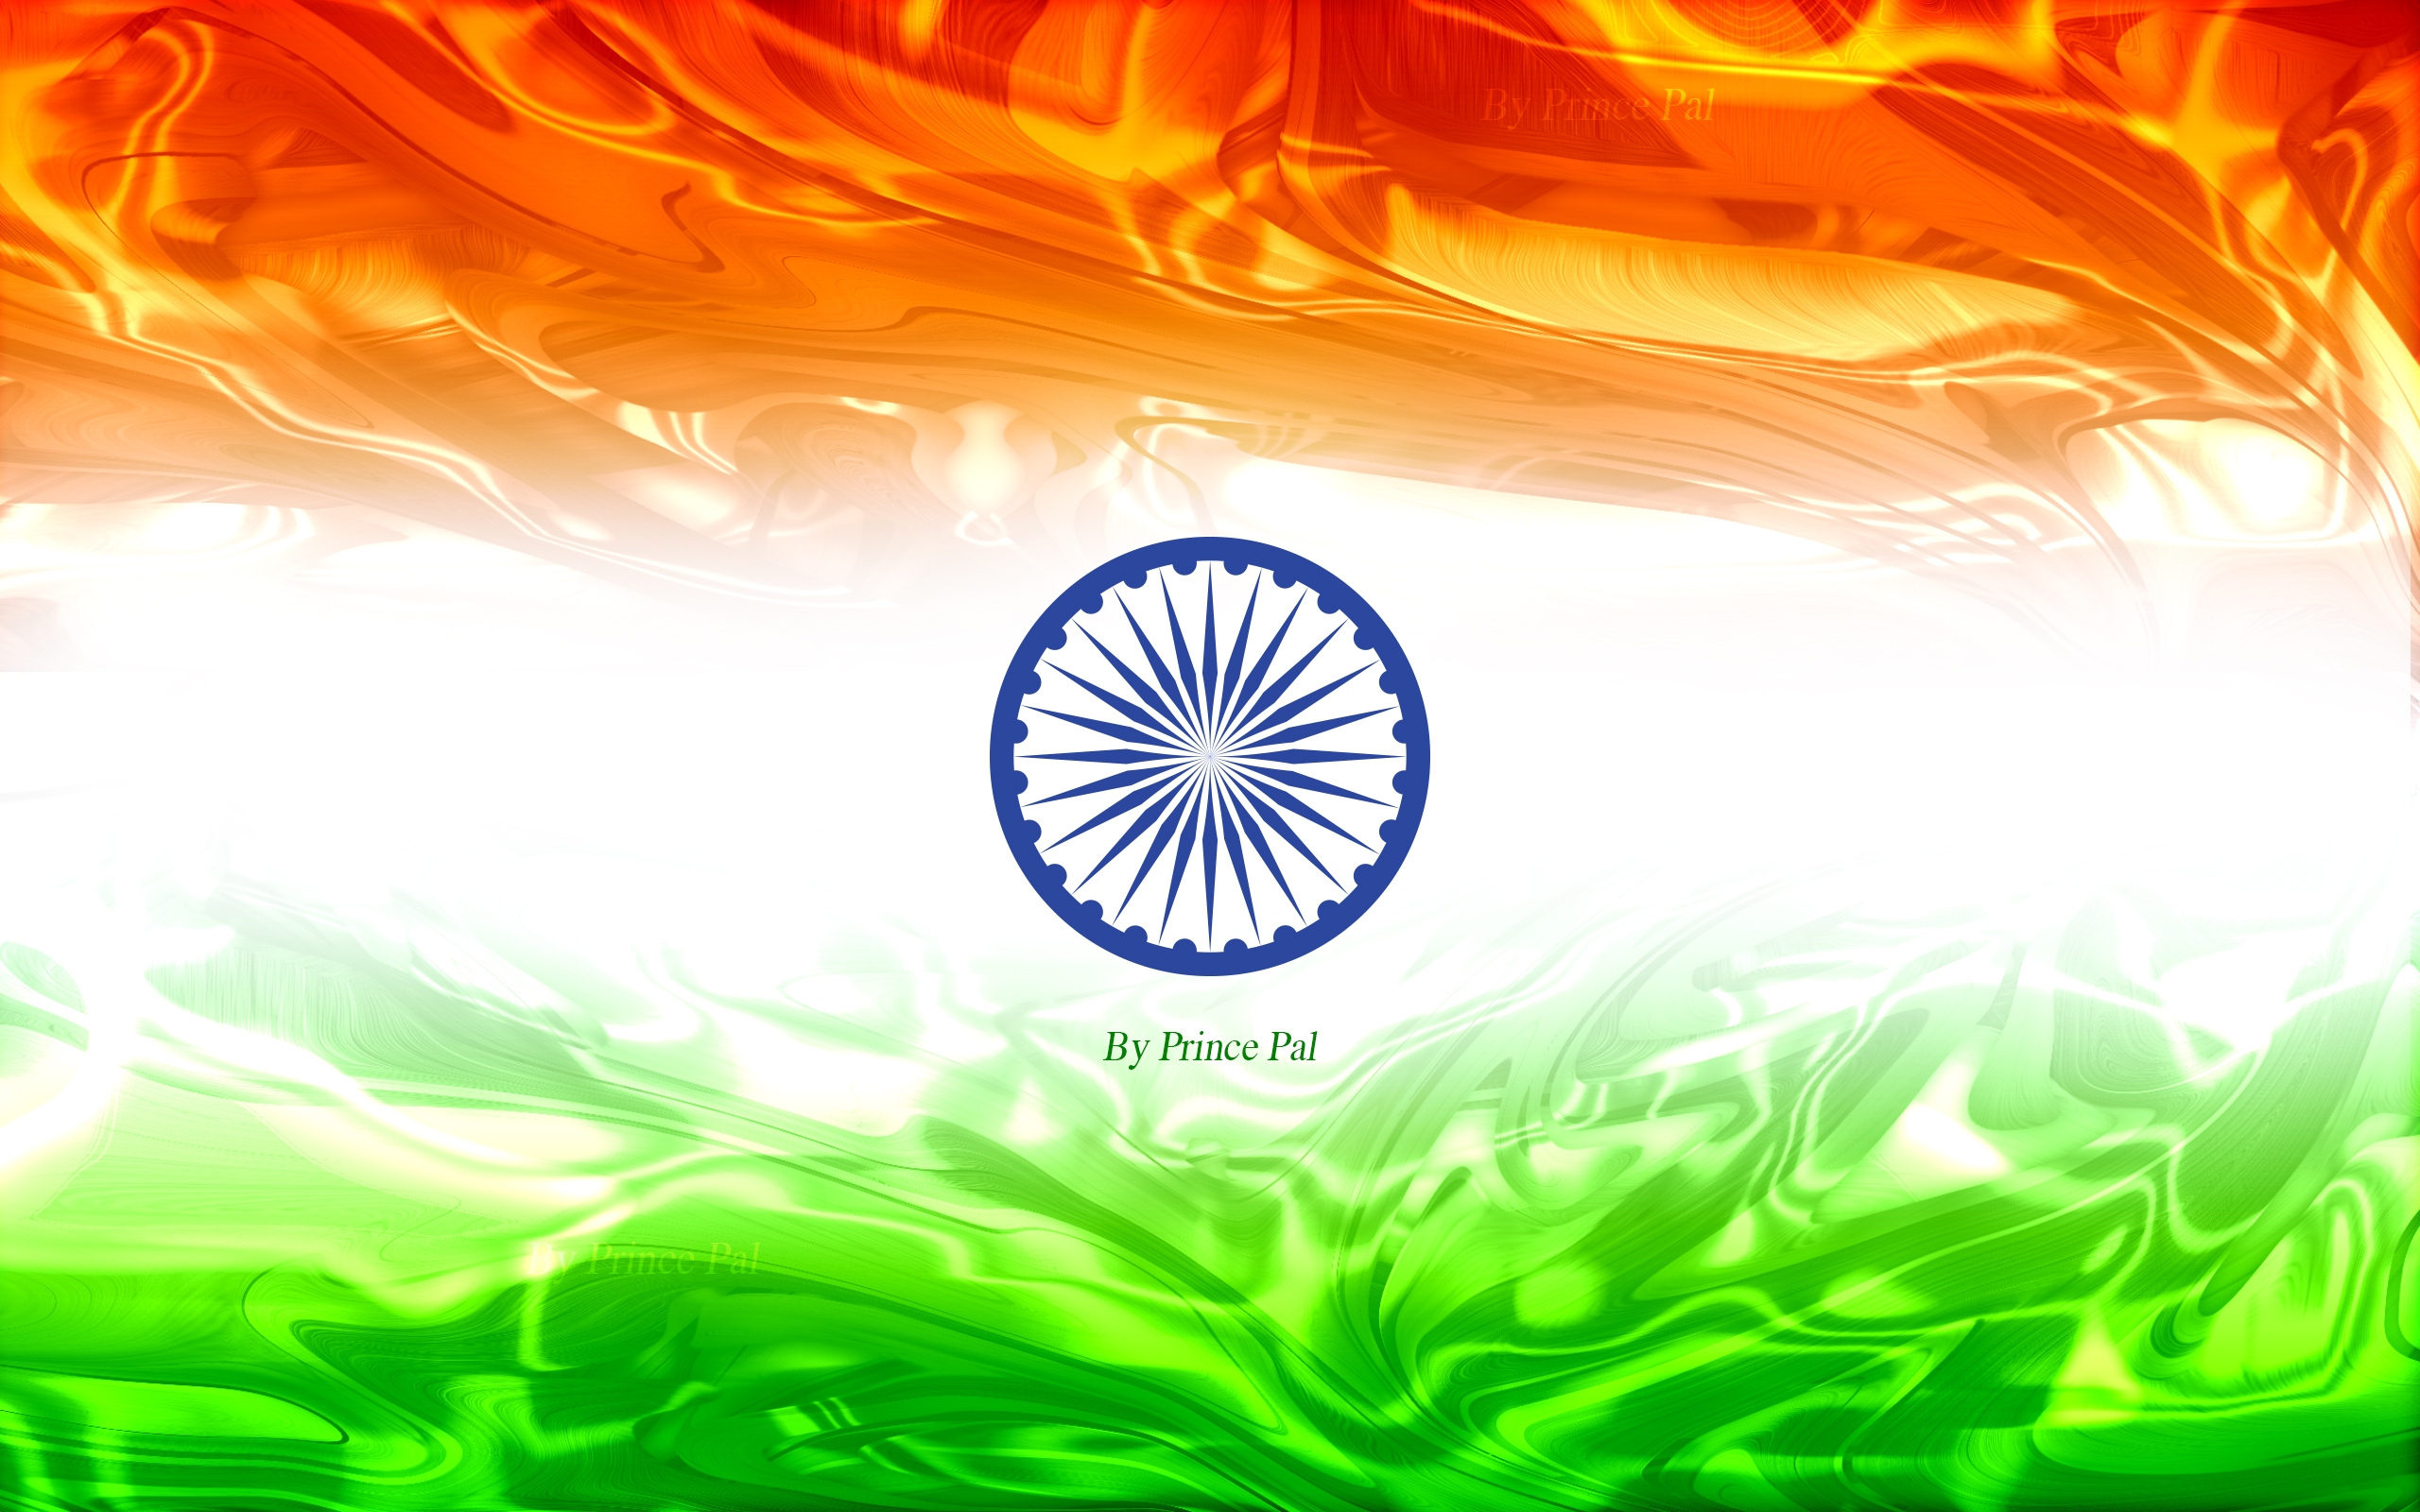 India Flag Wallpaper Collection By Prince Pal on Behance 2560x1600